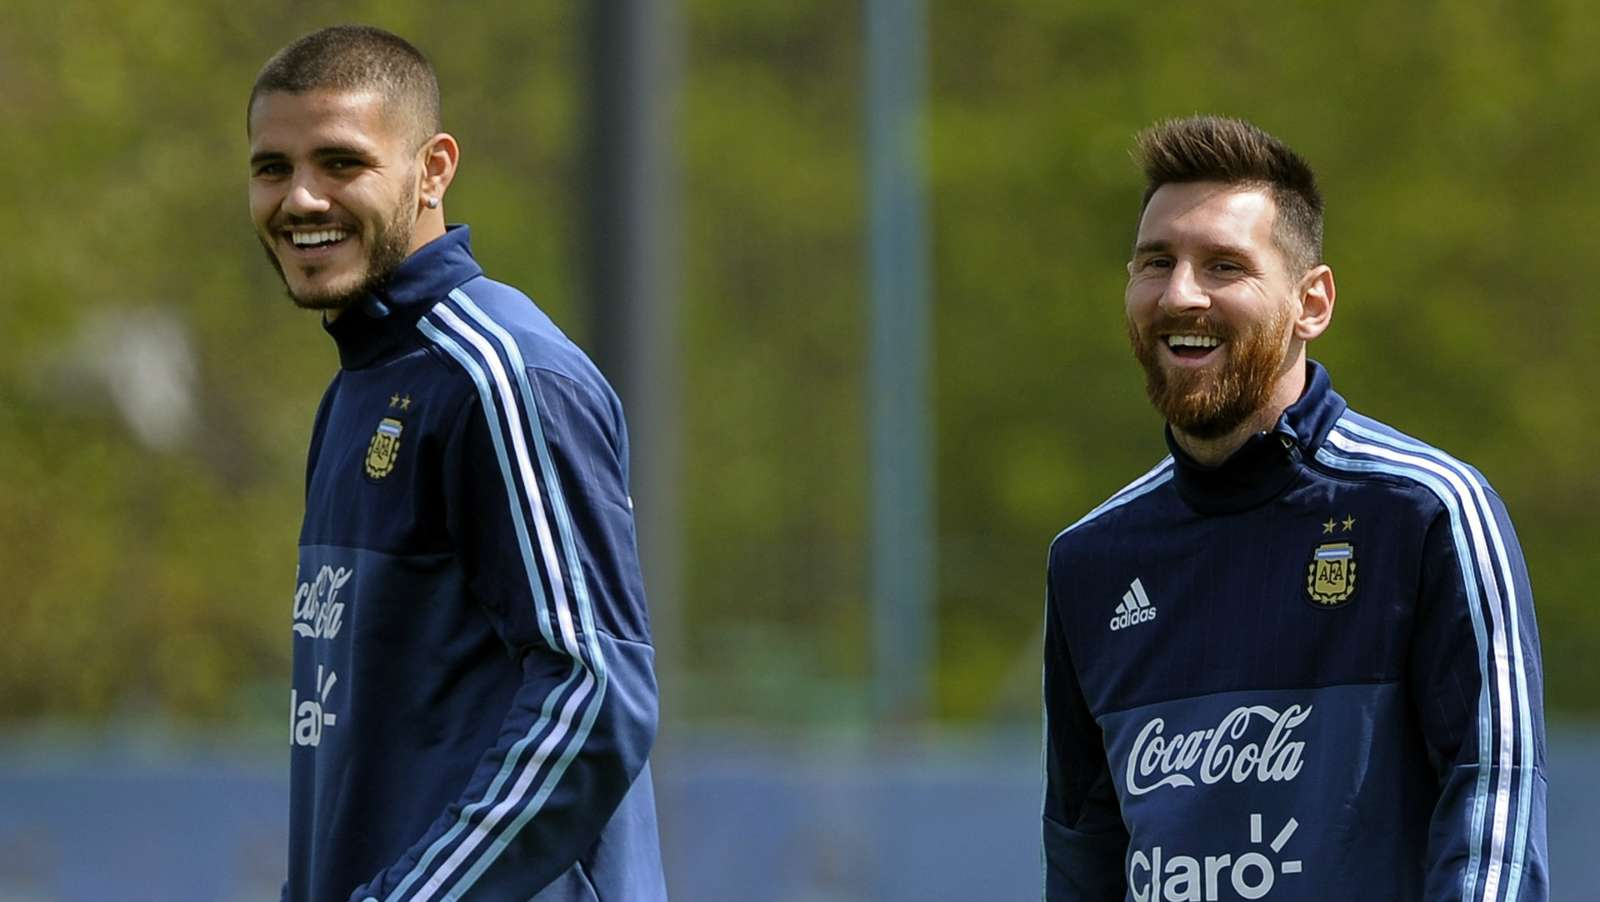 'He is the best player in the world' - Icardi rubbishes claims of rift with Messi - Bóng Đá